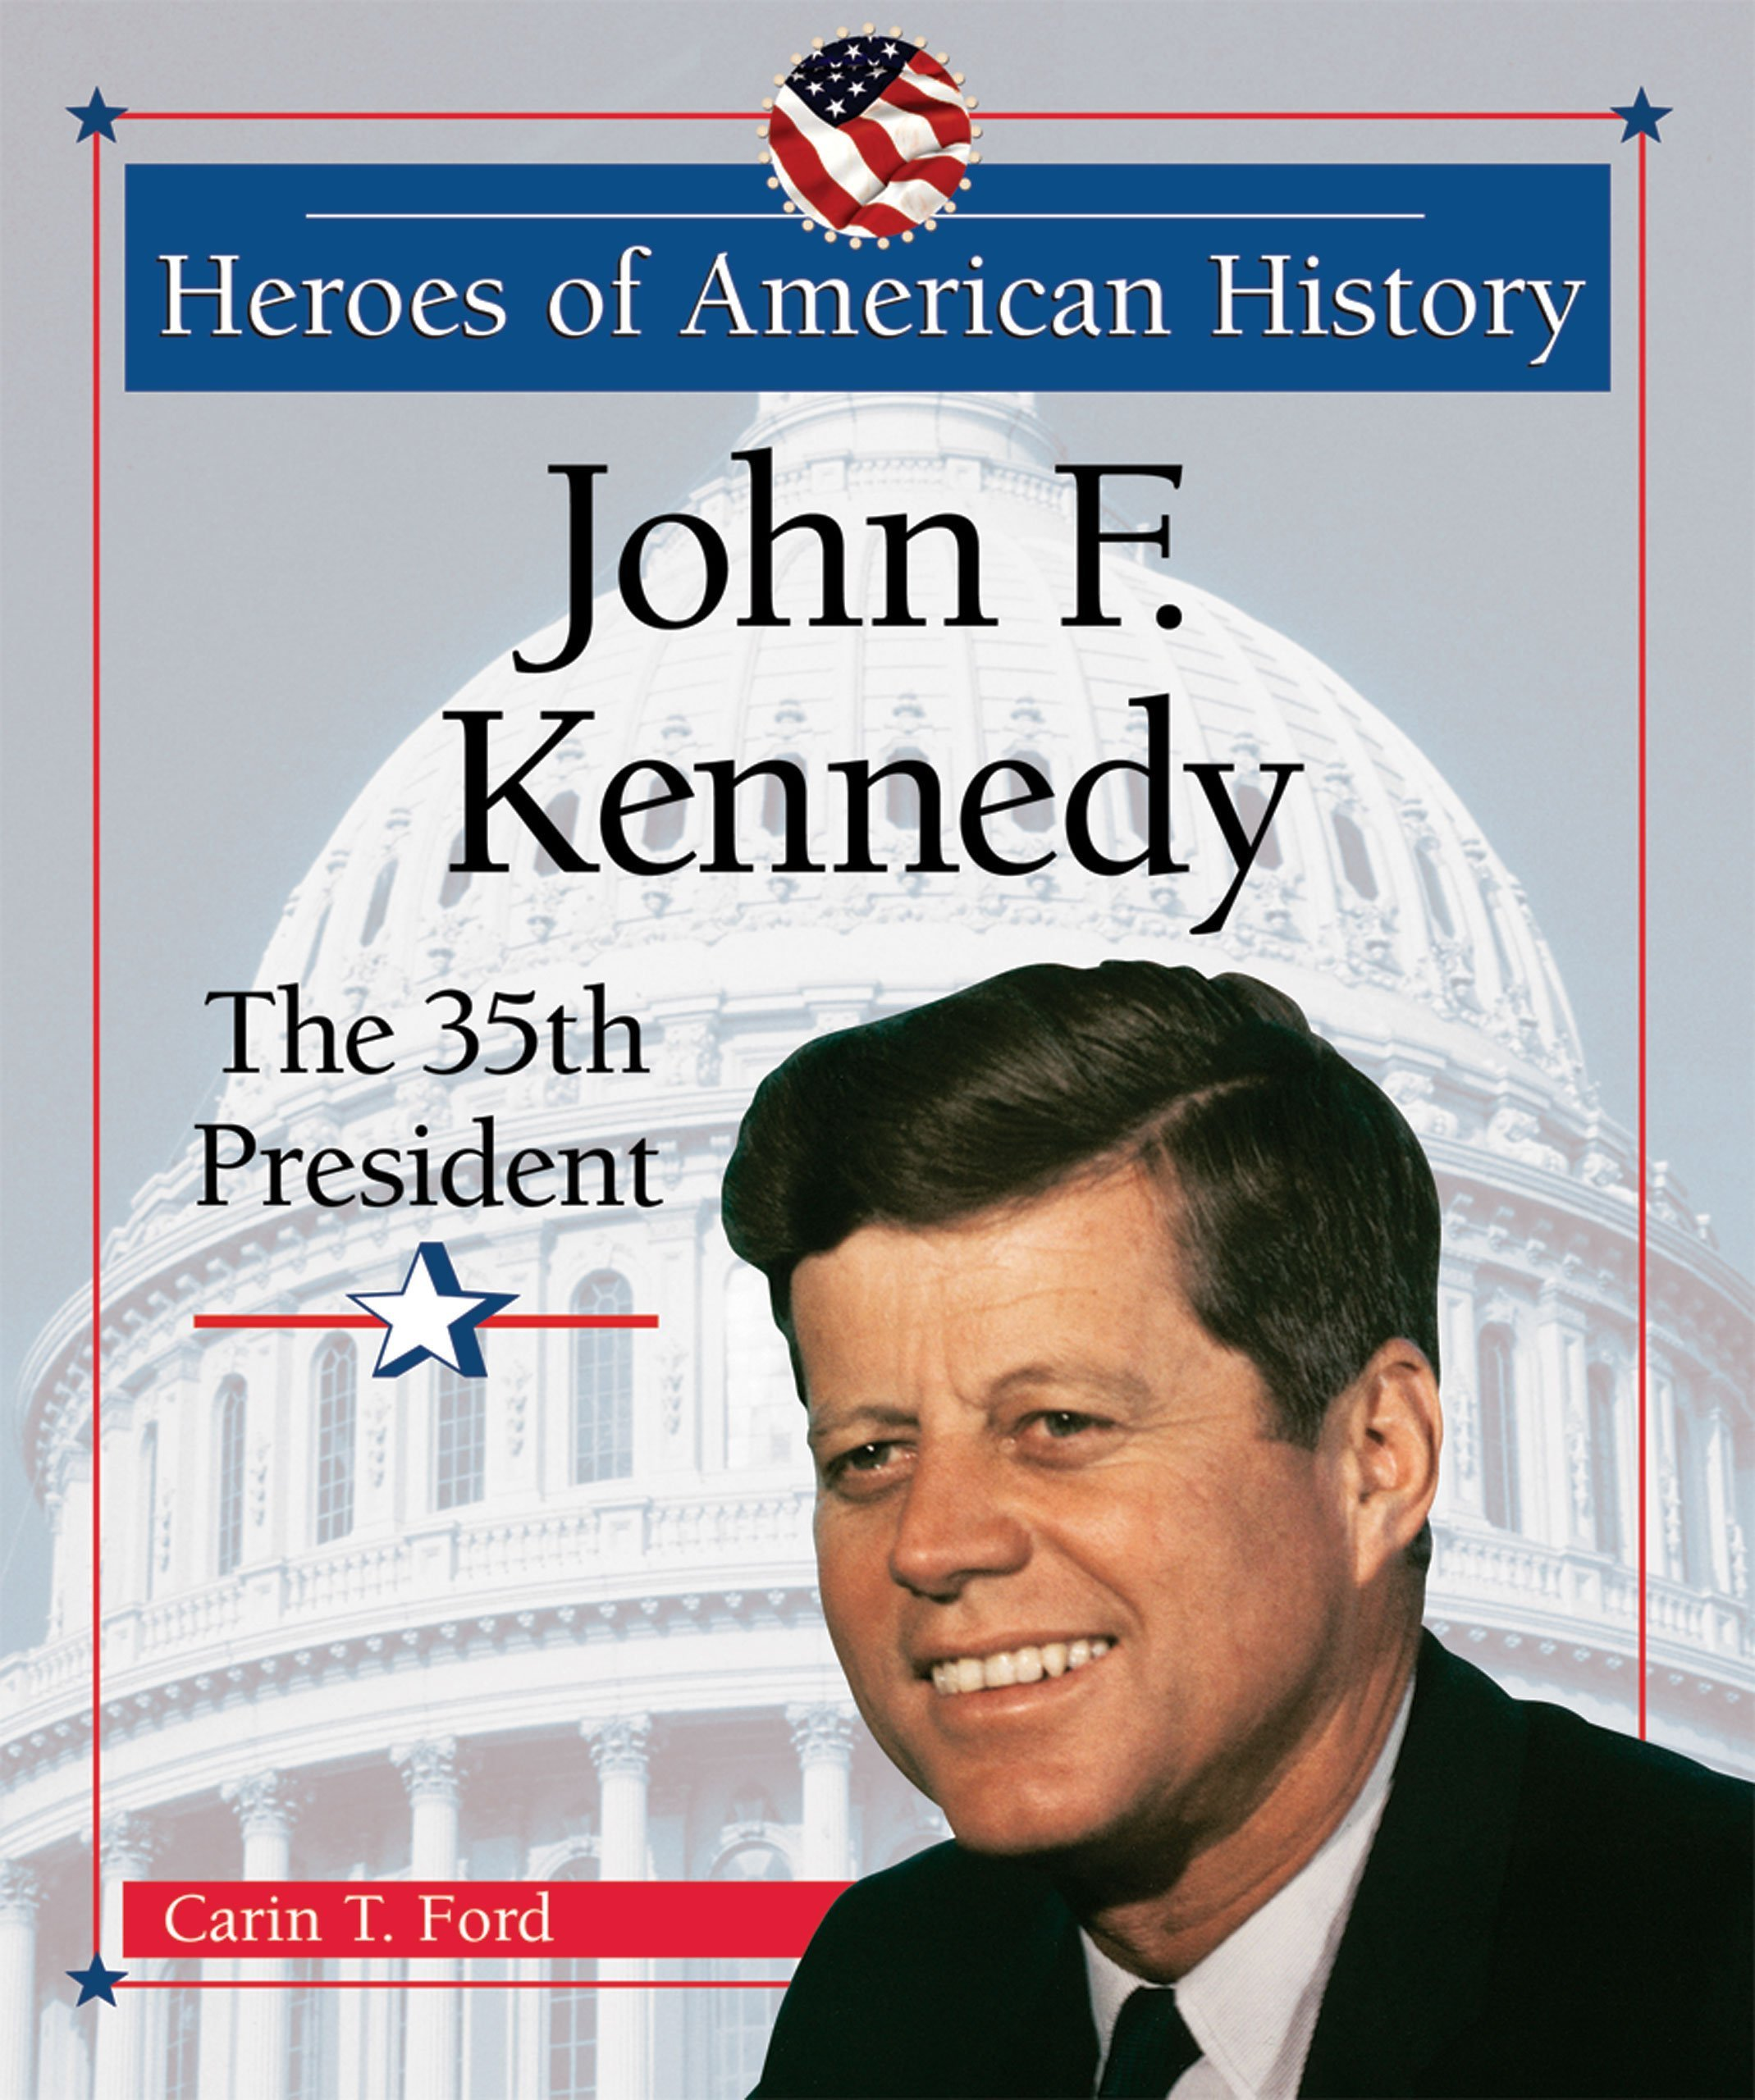 John F Kennedy The 35th President Heroes of American History